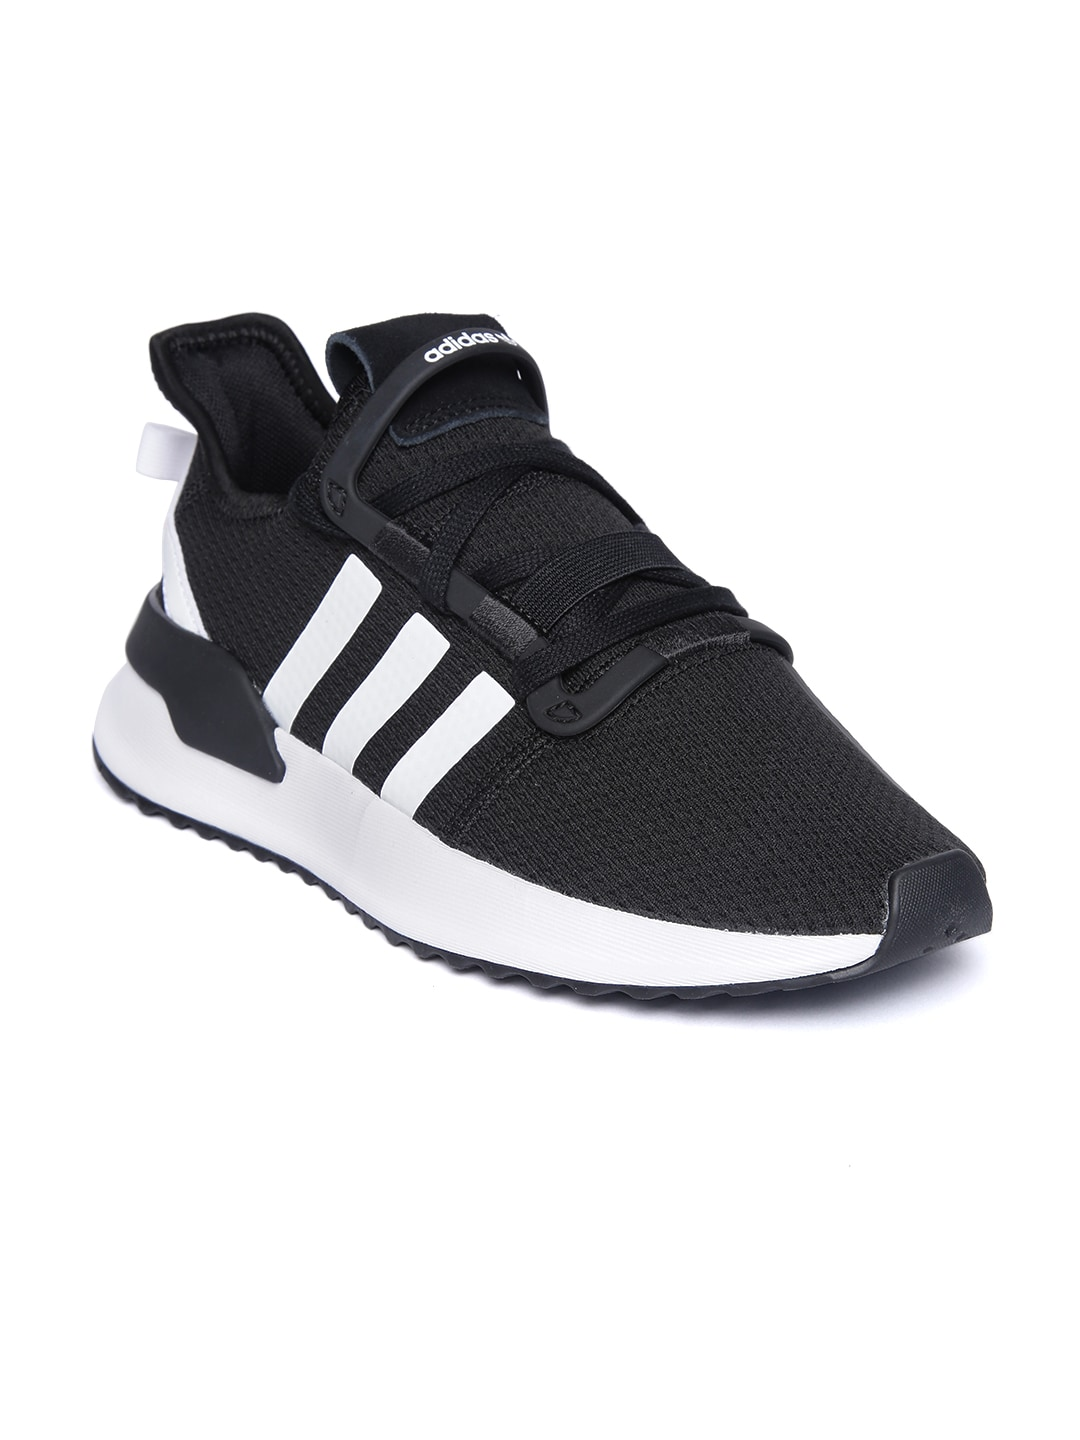 5c3a02770e2 Adidas Originals Boys Girls Shoes - Buy Adidas Originals Boys Girls Shoes  online in India